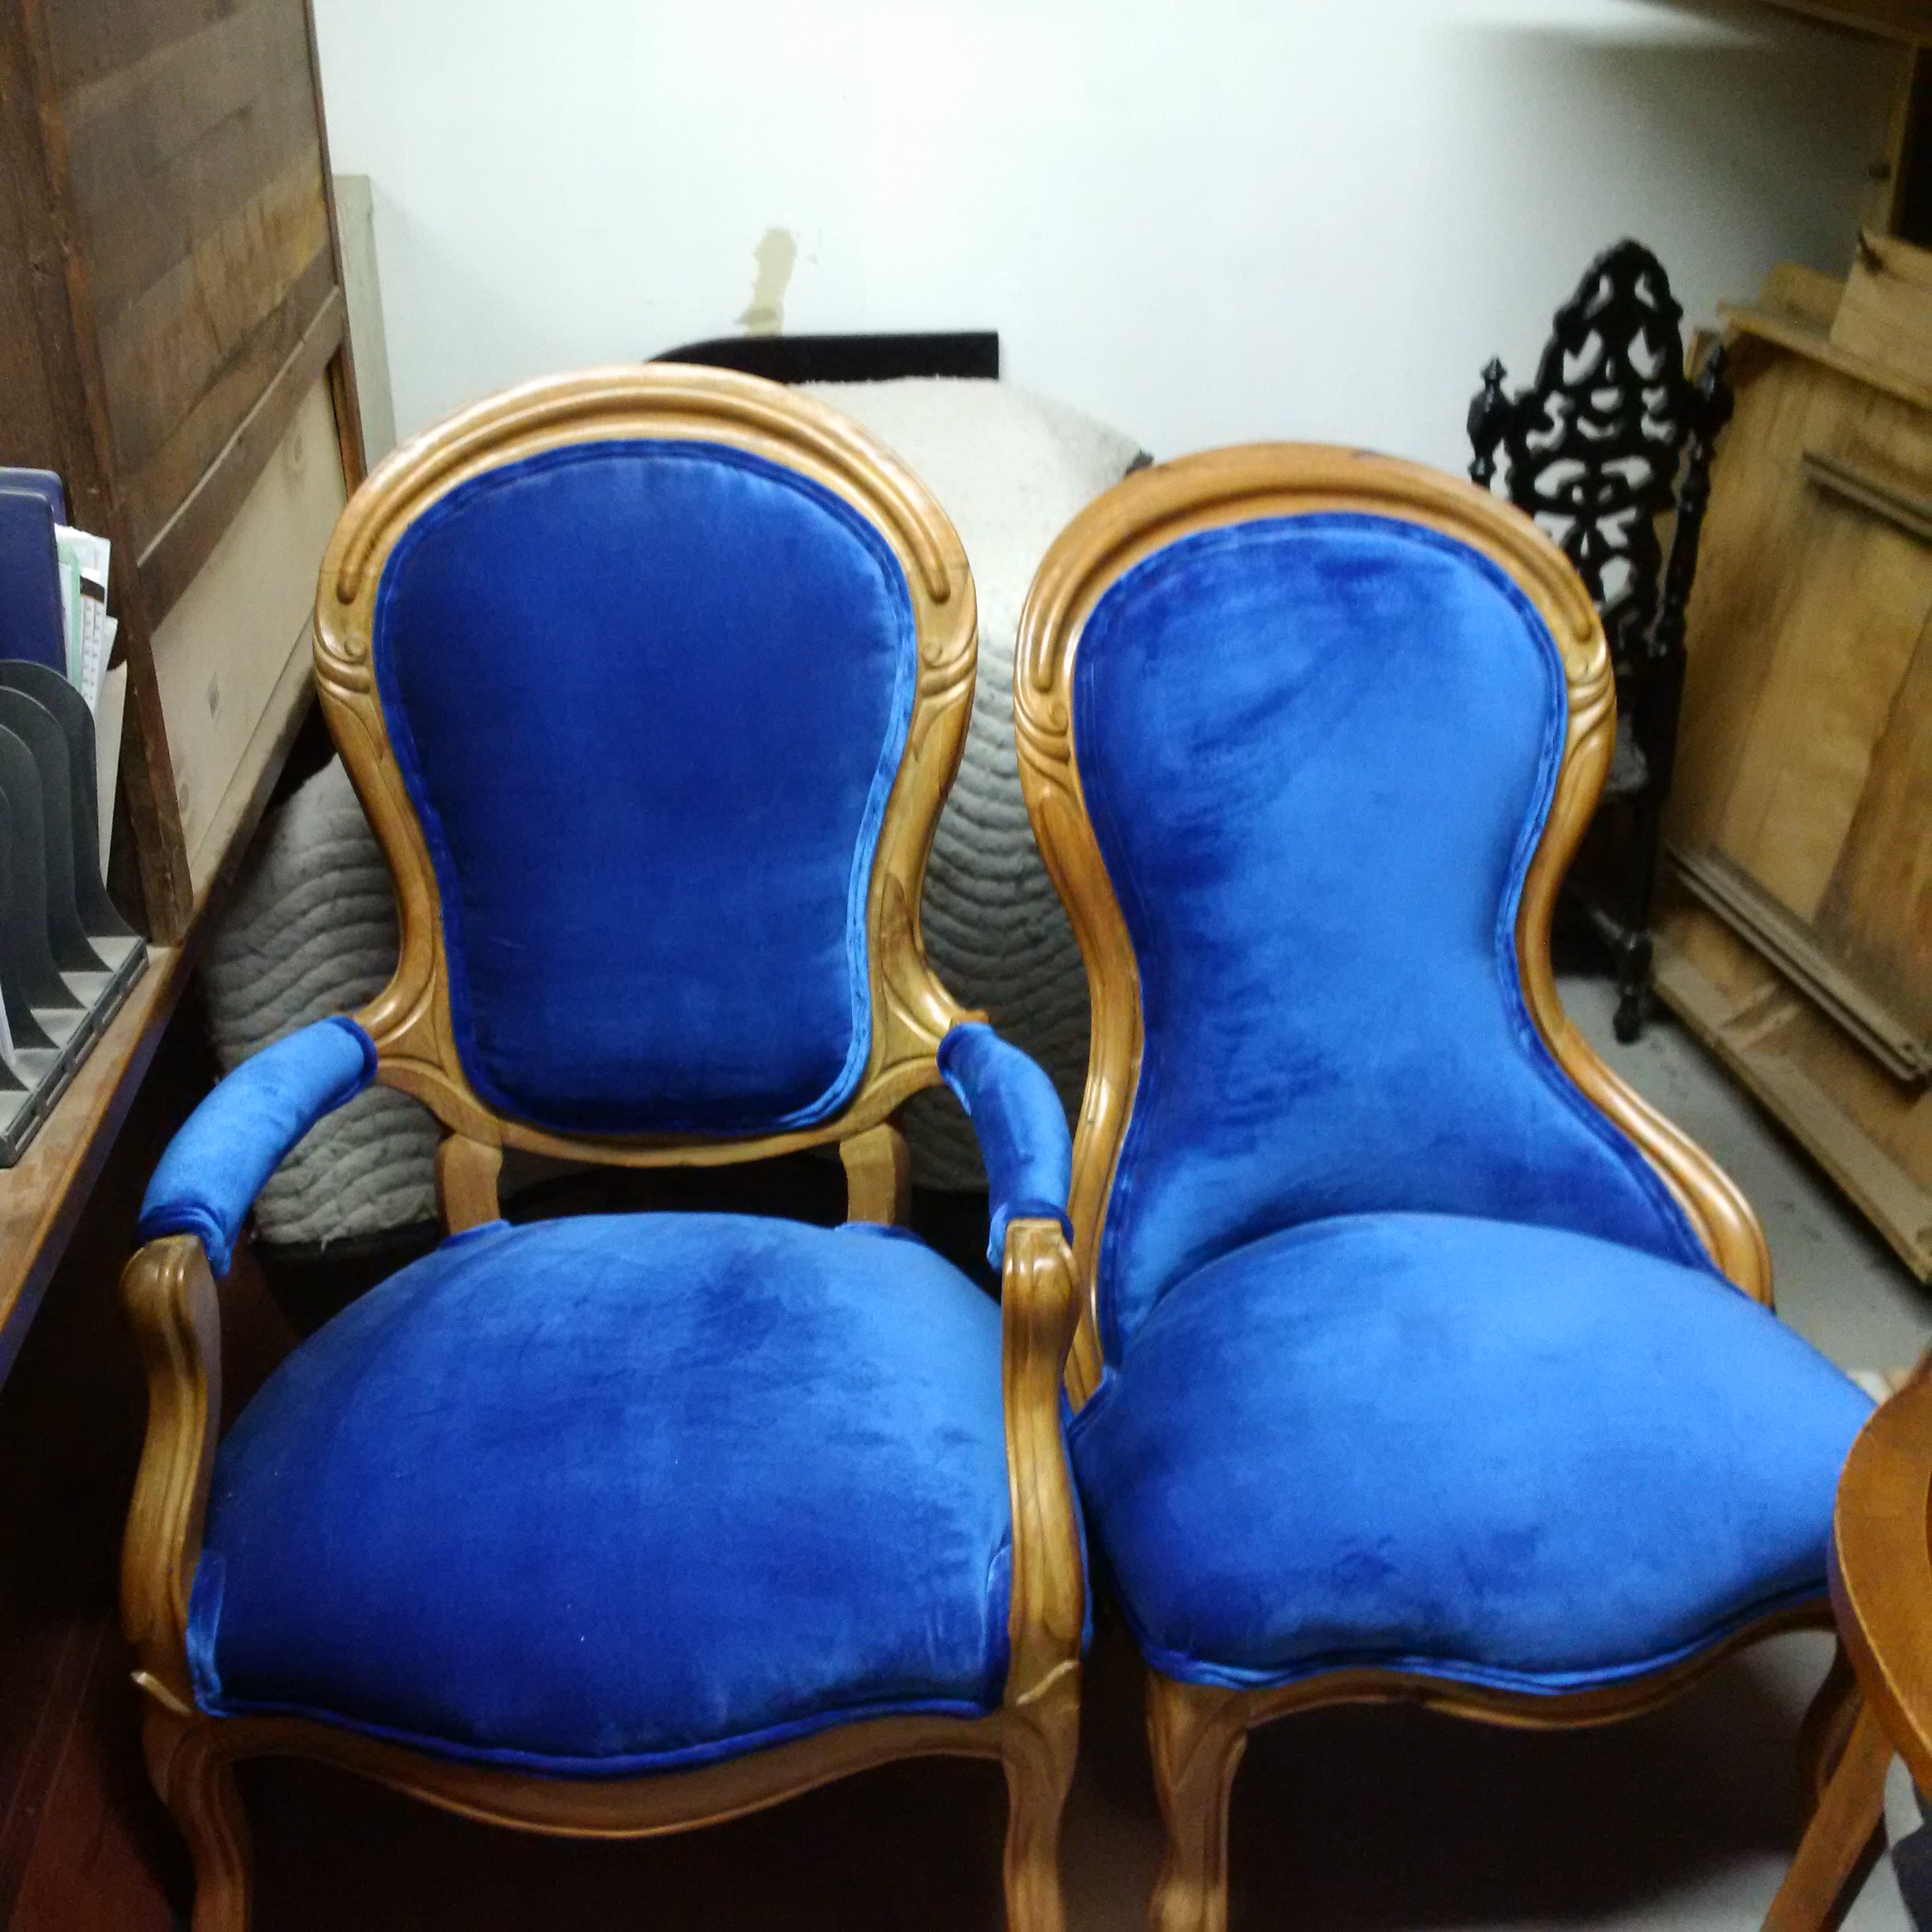 We also offer upholstery. You can bring your own fabric in, or choose from our supply. We have hundreds to choose from.